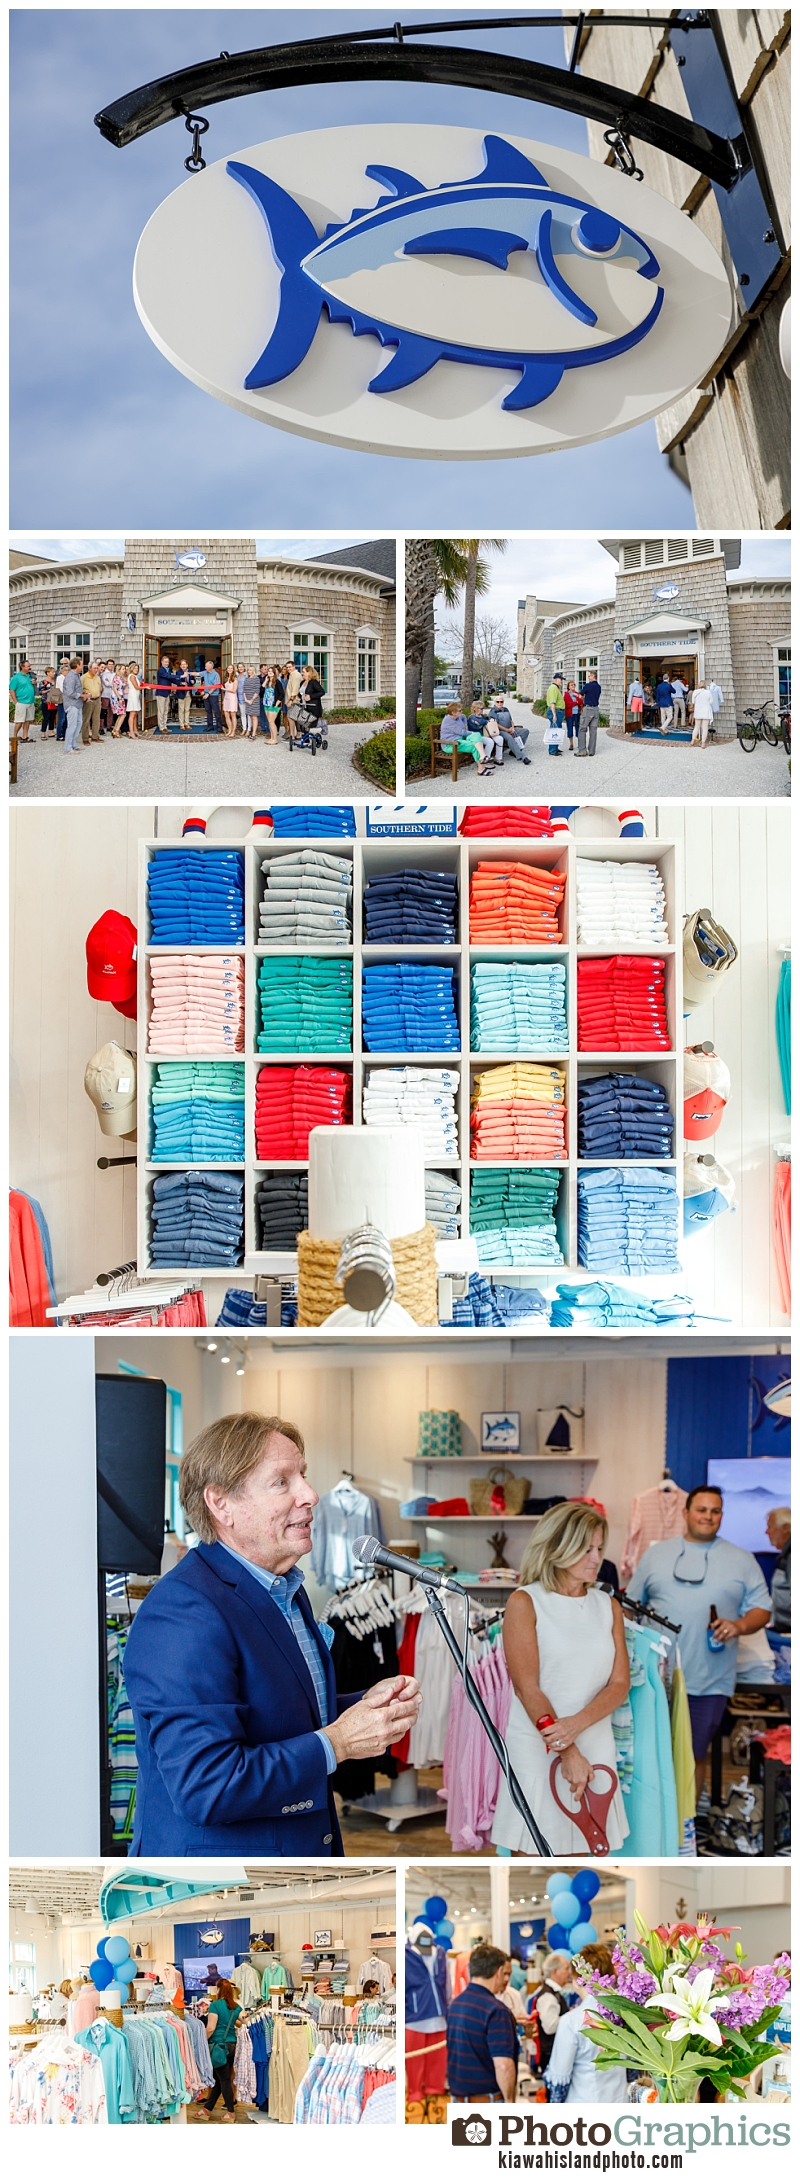 event photography for Southern Tide in Freshfields Village on Kiawah Island South Carolina